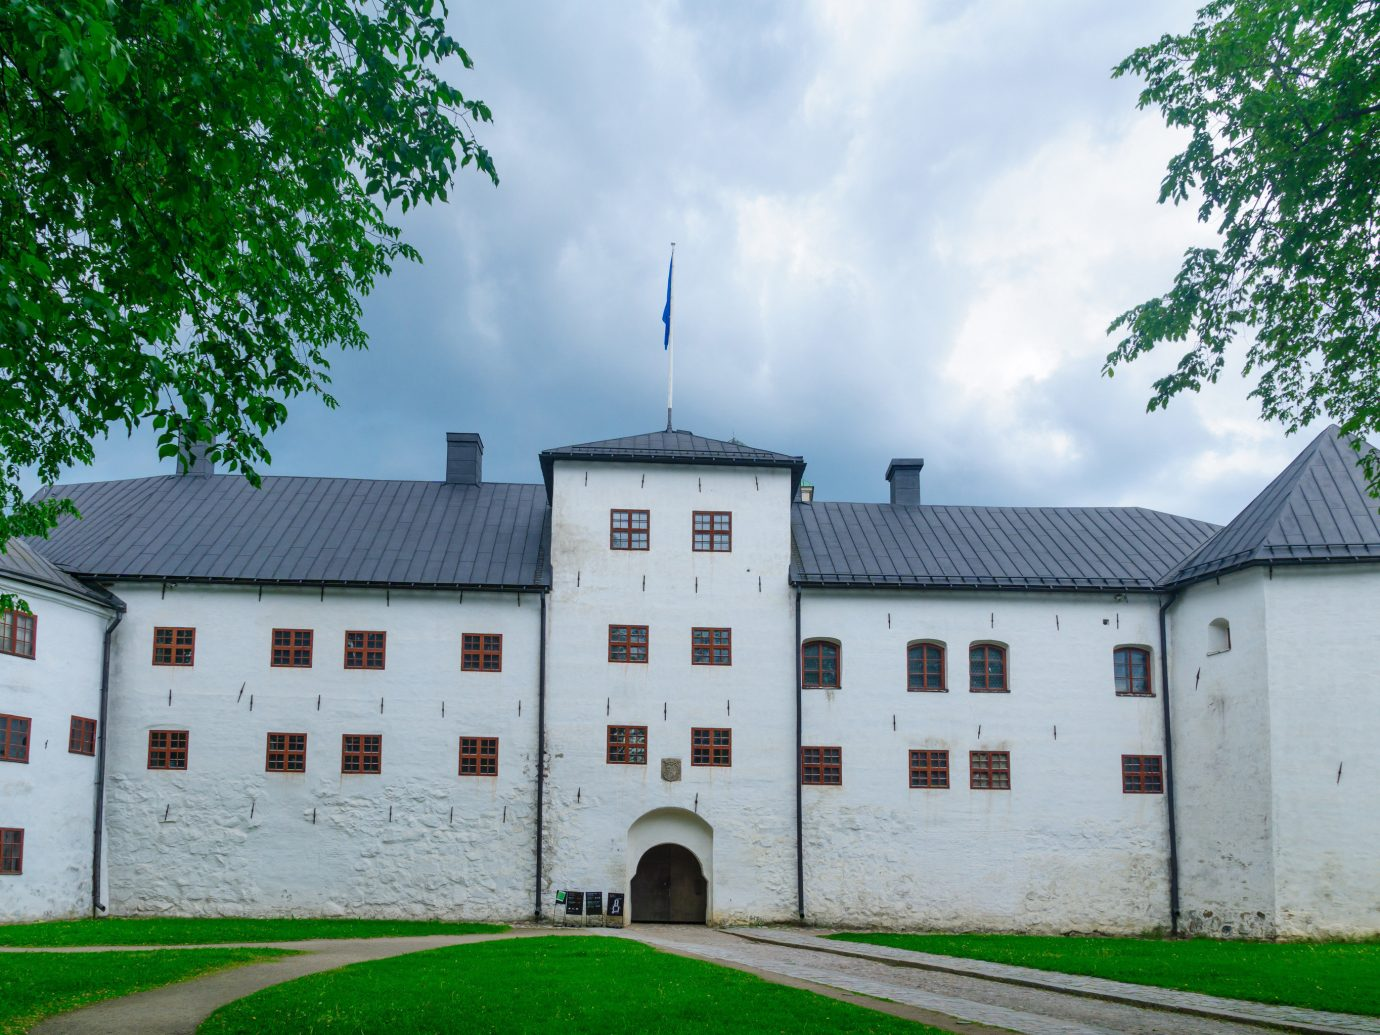 Finland Trip Ideas tree outdoor grass building sky house château estate property manor house facade stately home mansion castle medieval architecture national trust for places of historic interest or natural beauty palace window almshouse abbey residential roof old